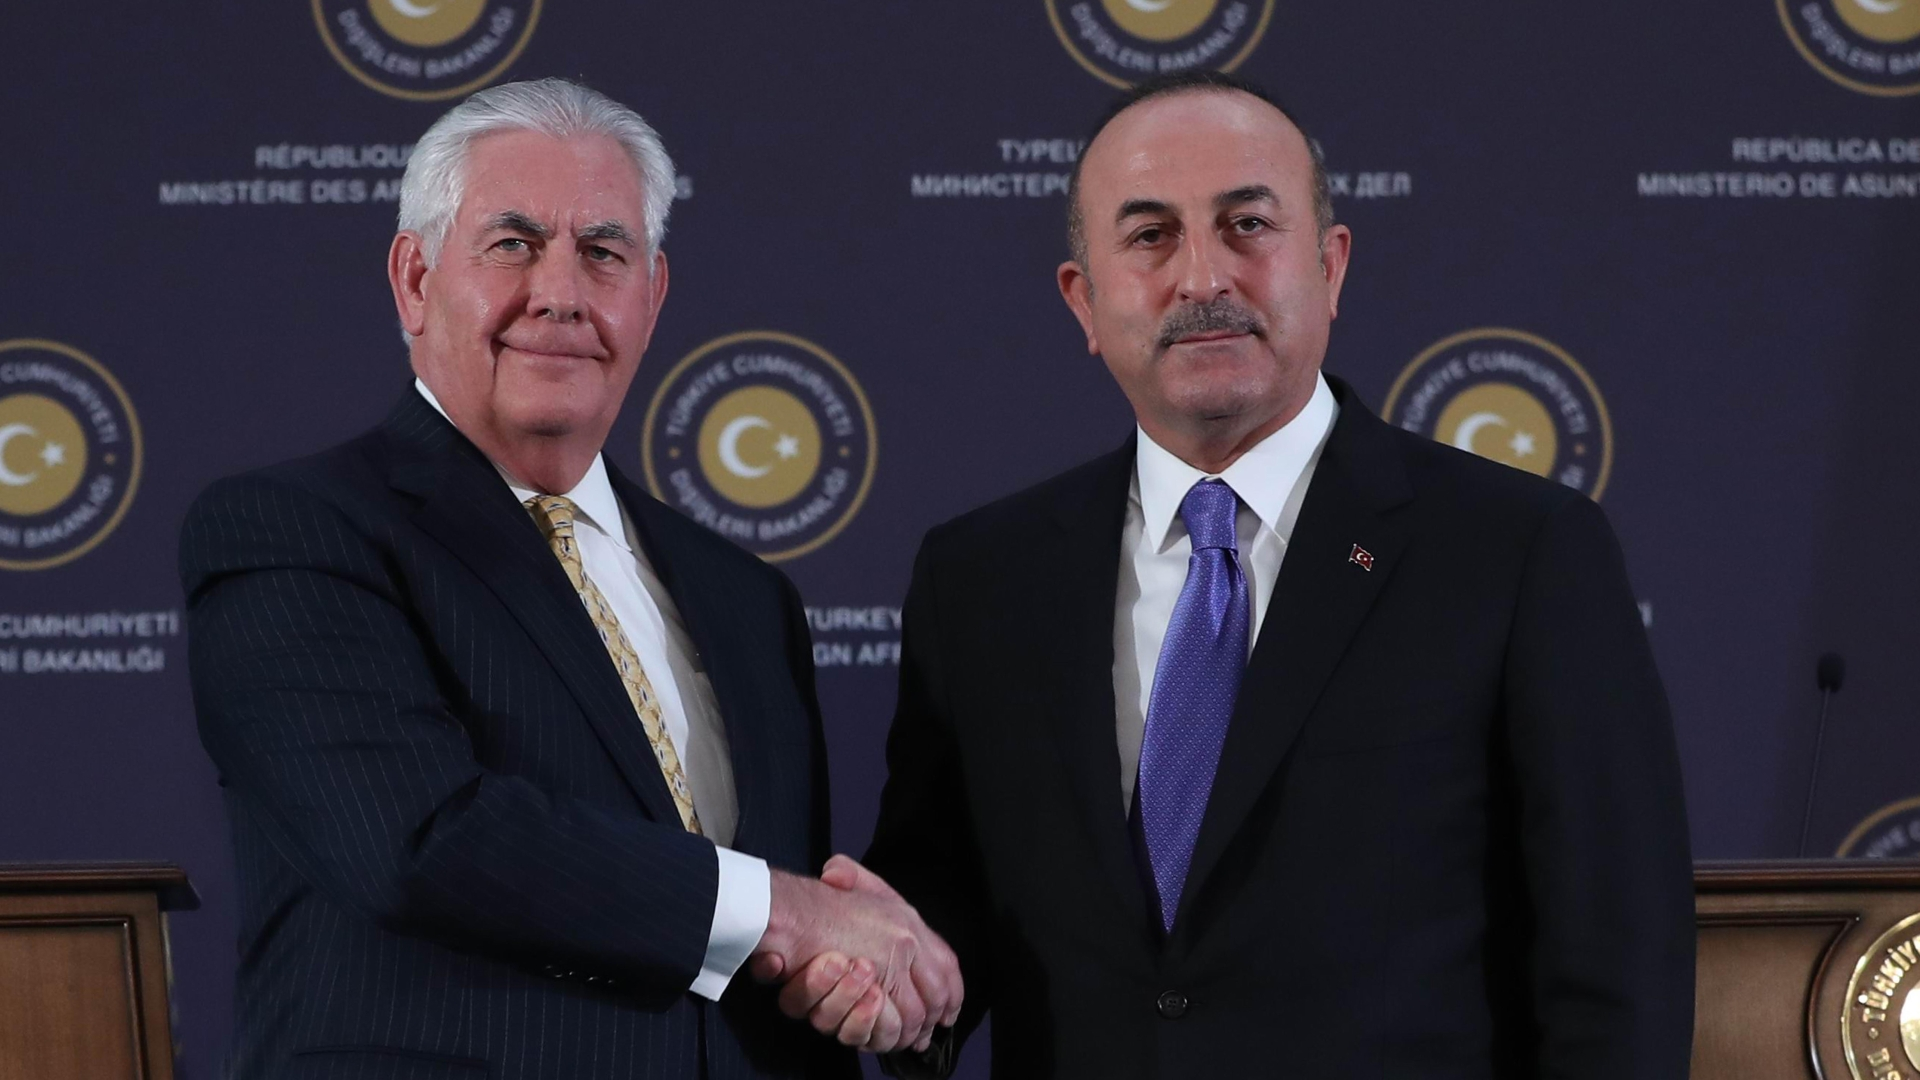 Turkey and the U.S. agree to move forward, not dwell on past differences